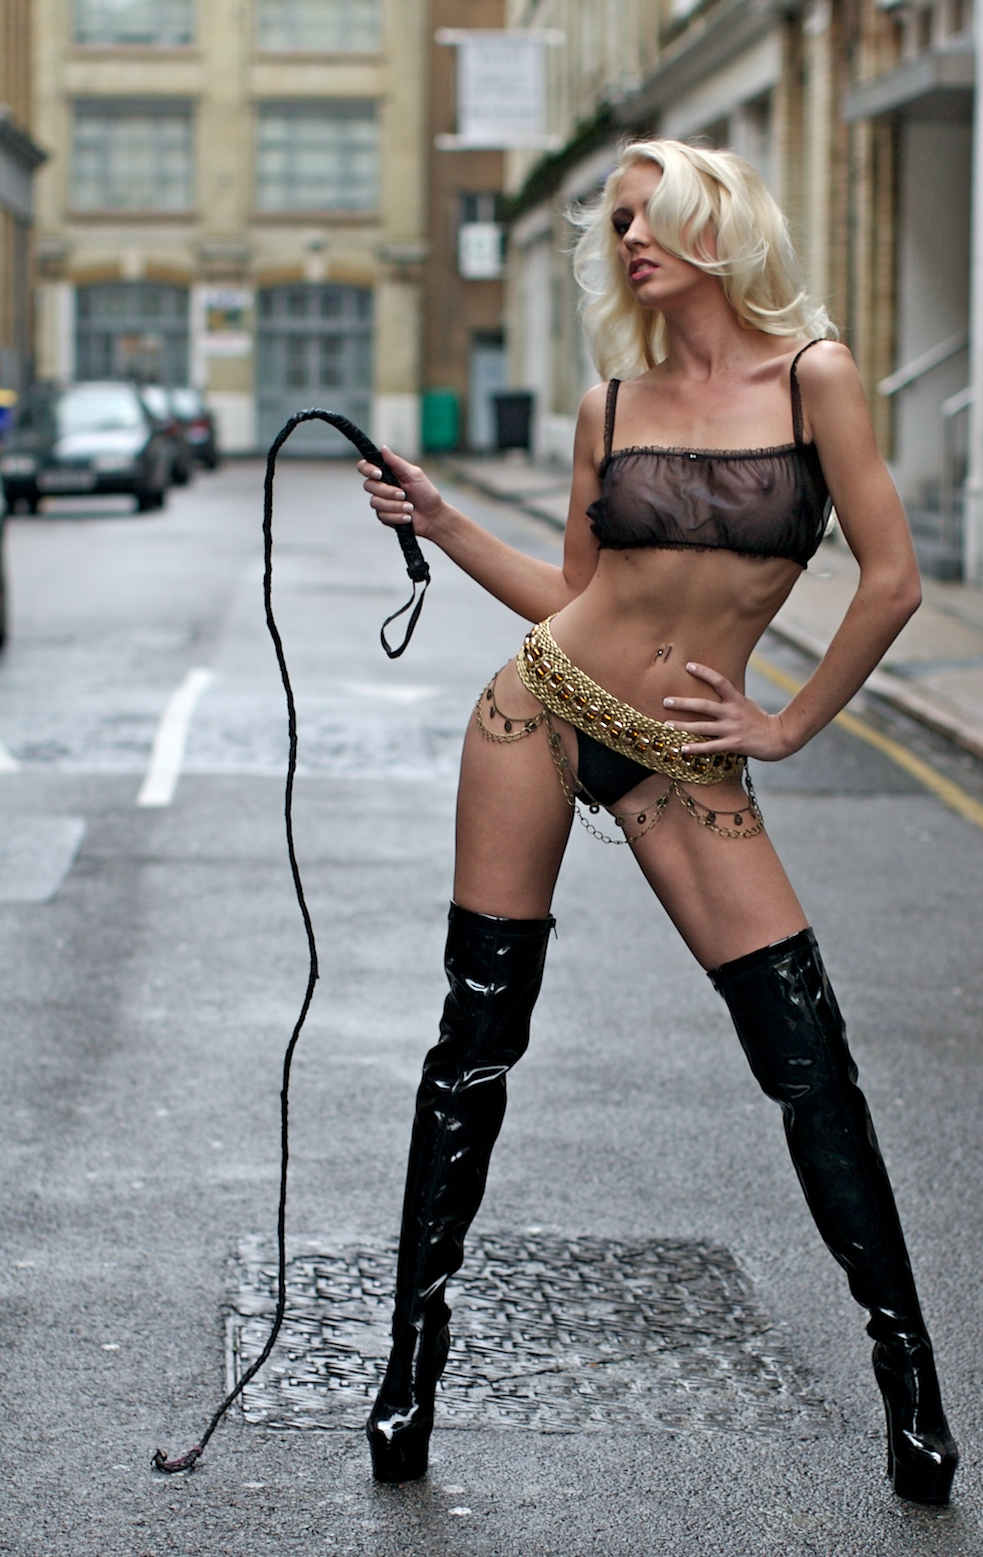 Image of model Shelly Radley in a London Backstreet